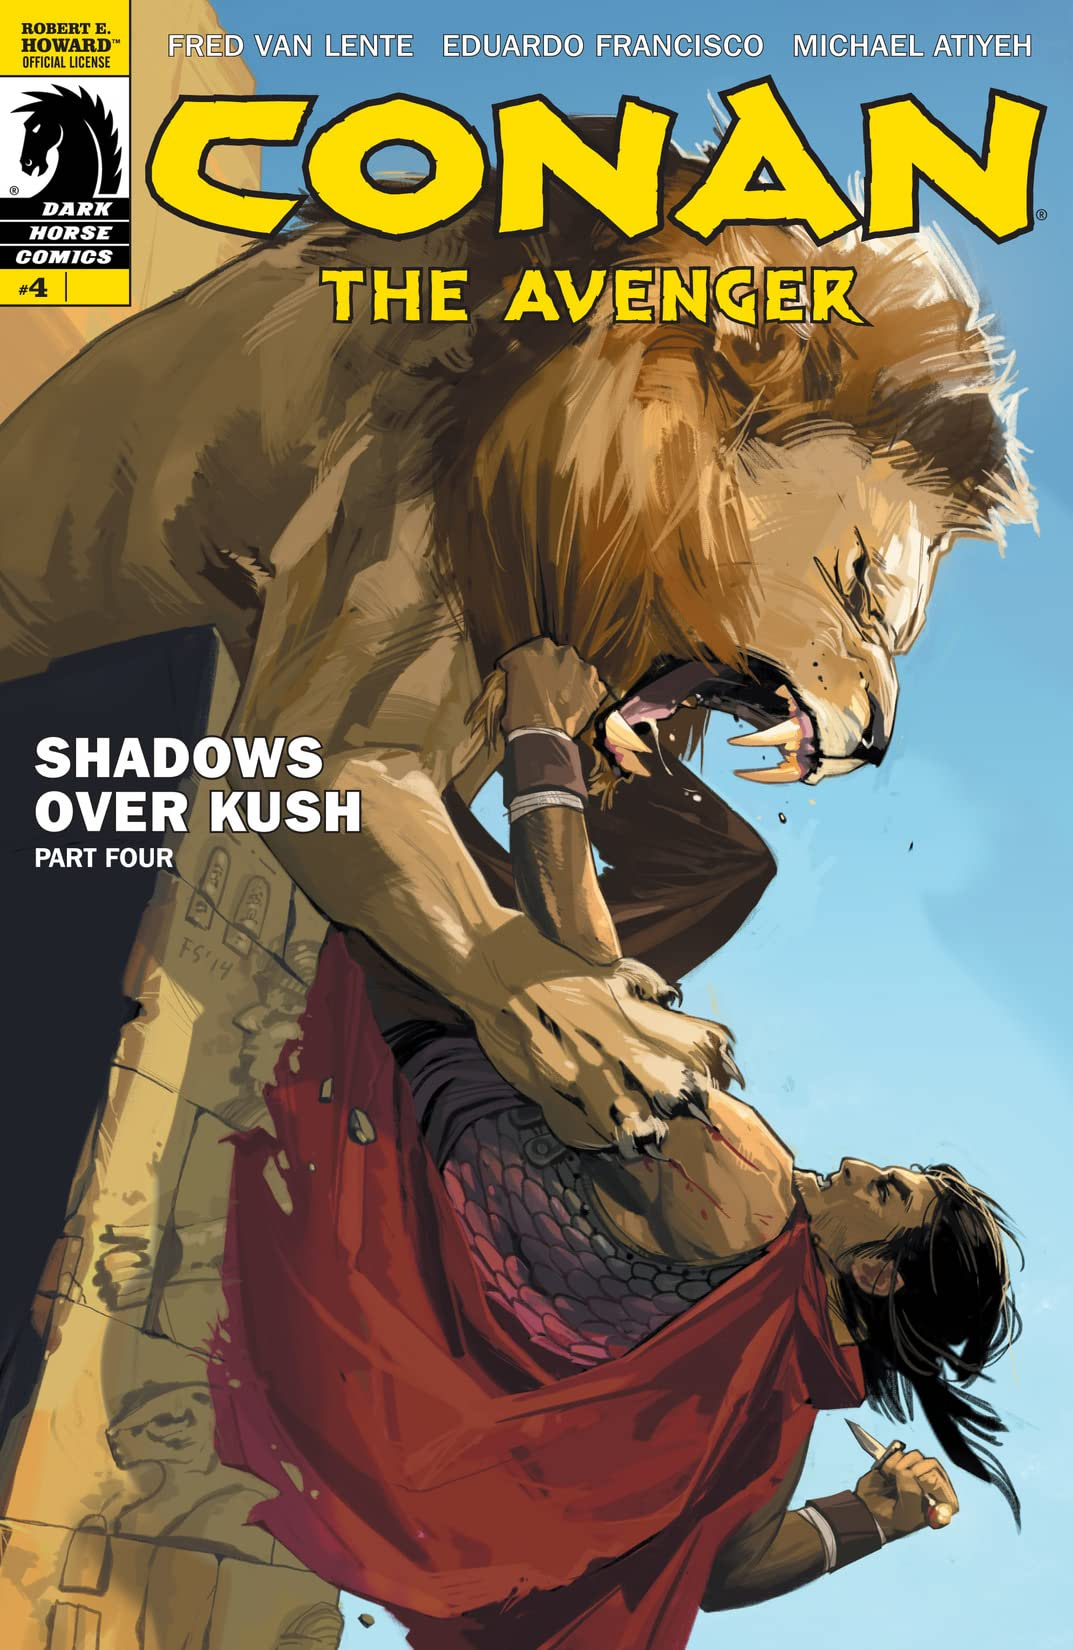 Conan the Avenger #4